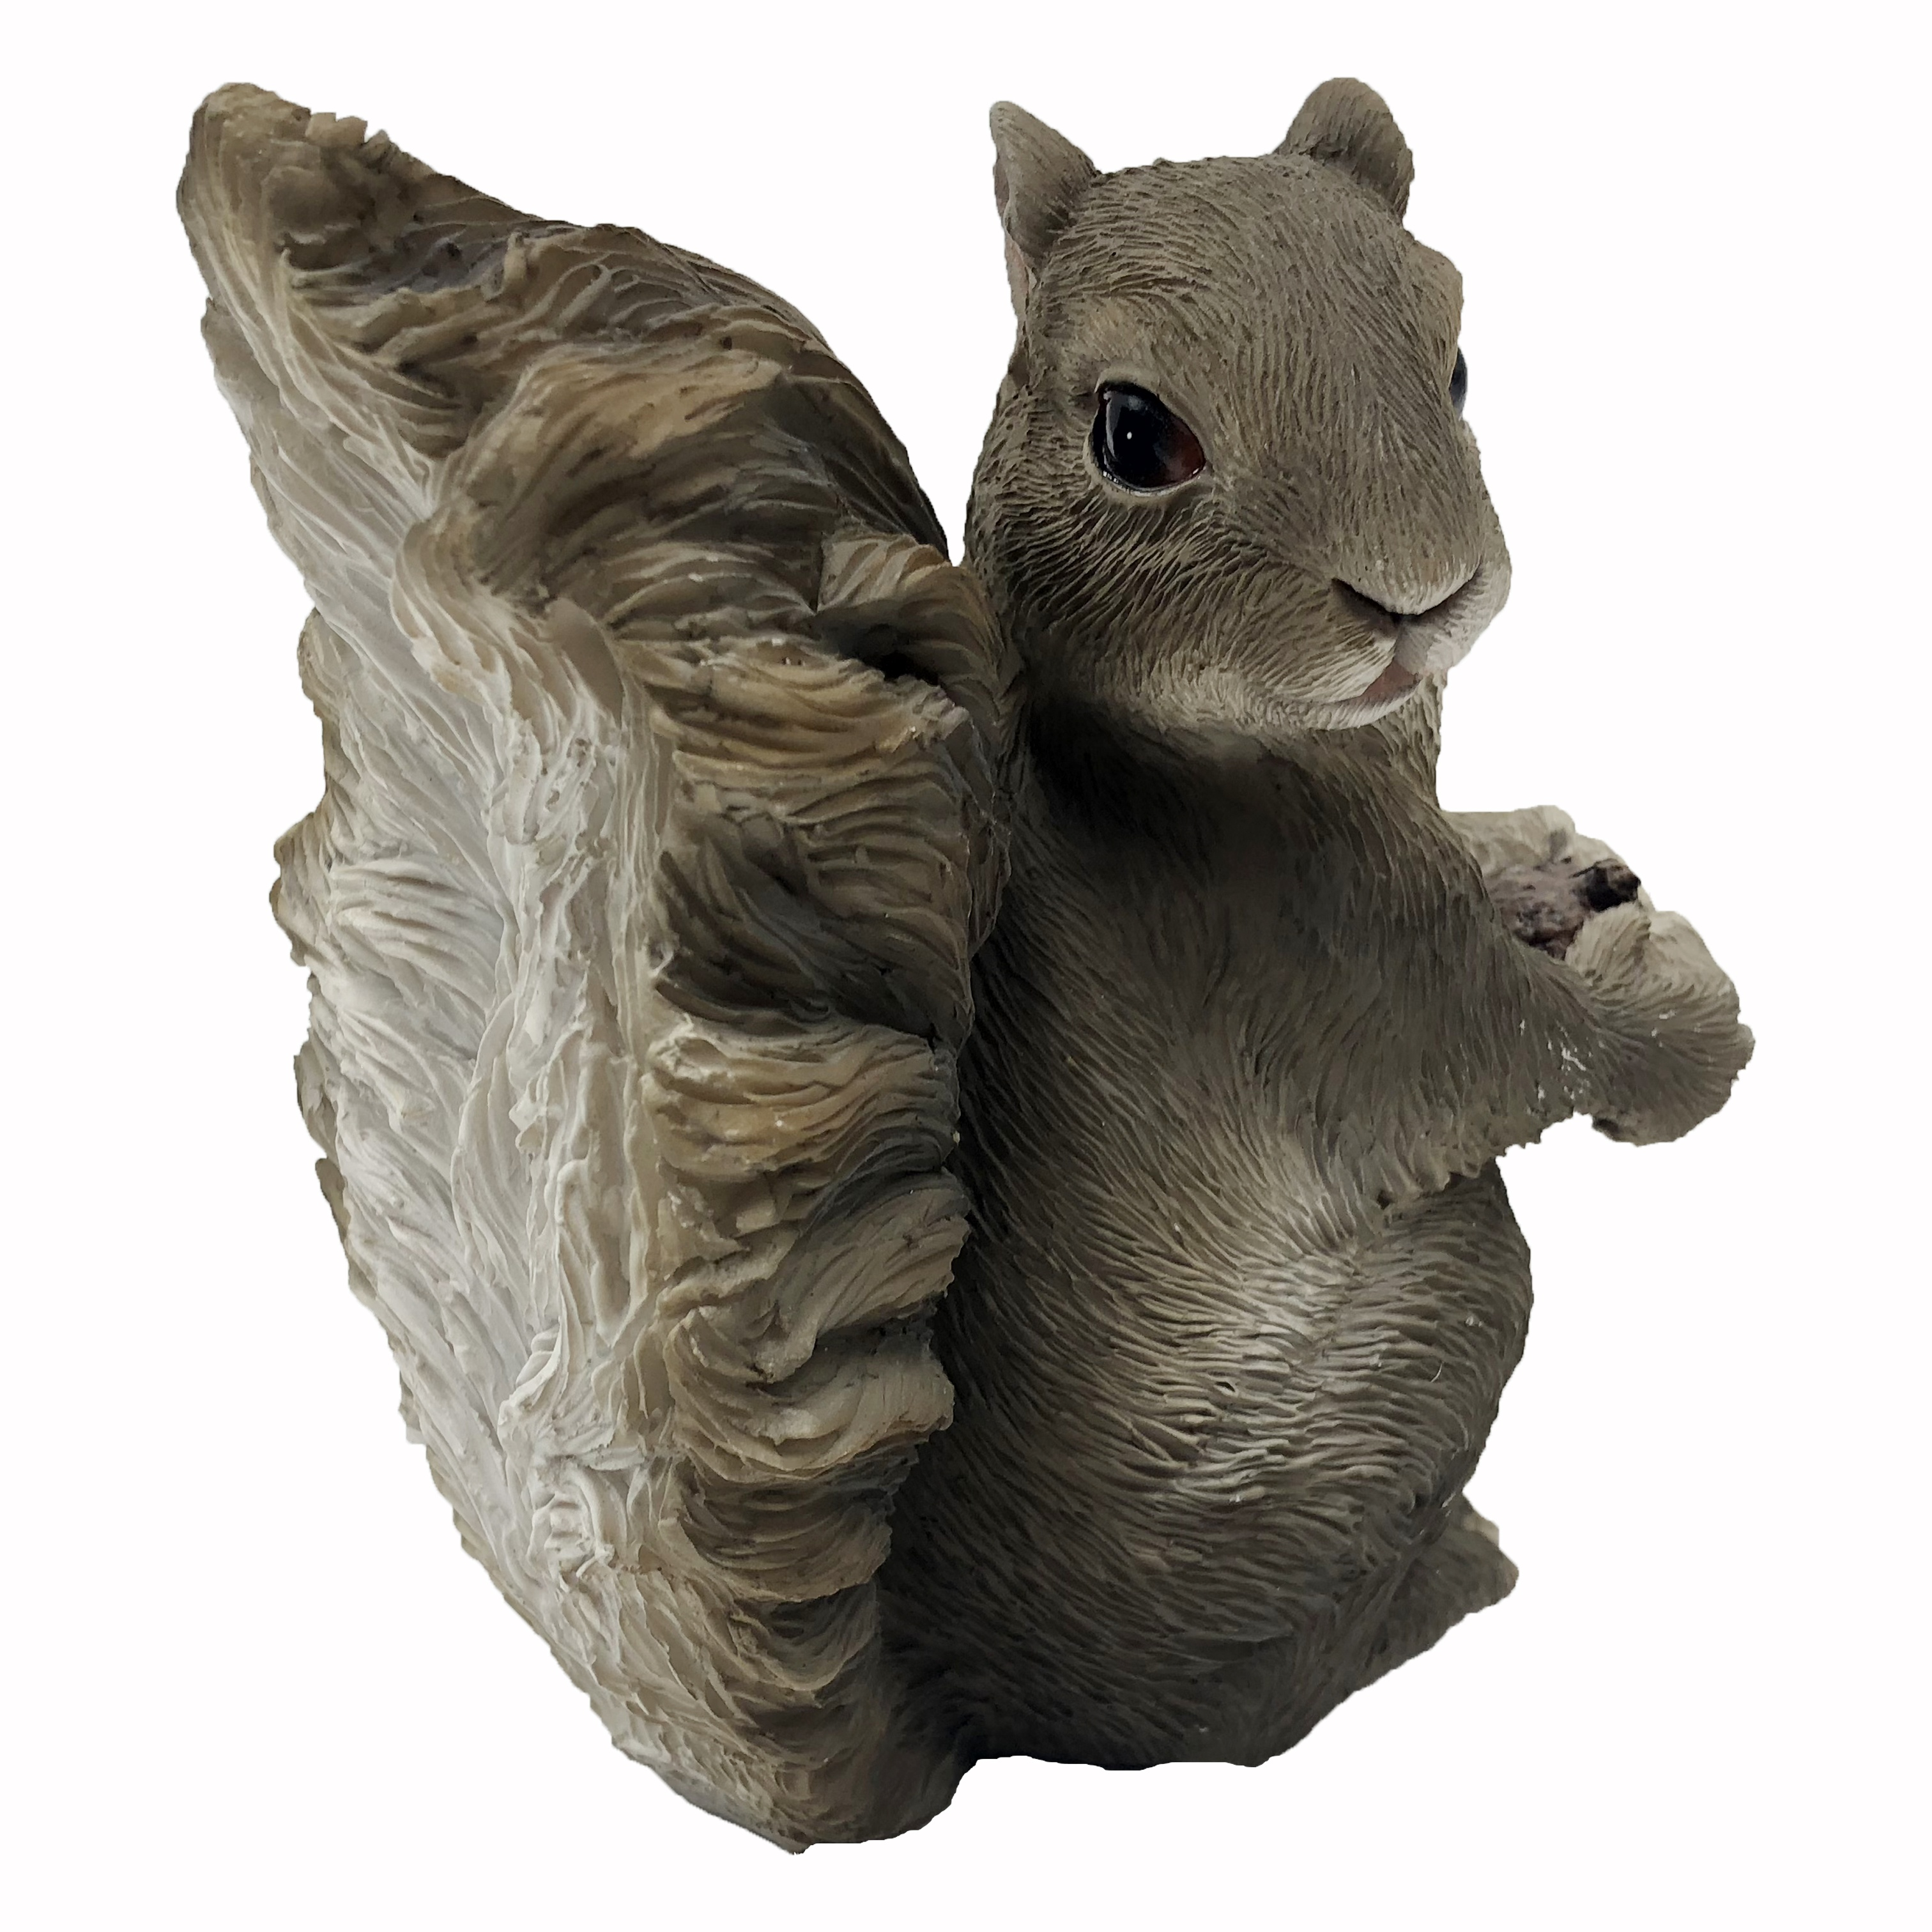 Outdoor Garden Resin Animal Gift Ornament Hanging Decor Pair Lovely Squirrel